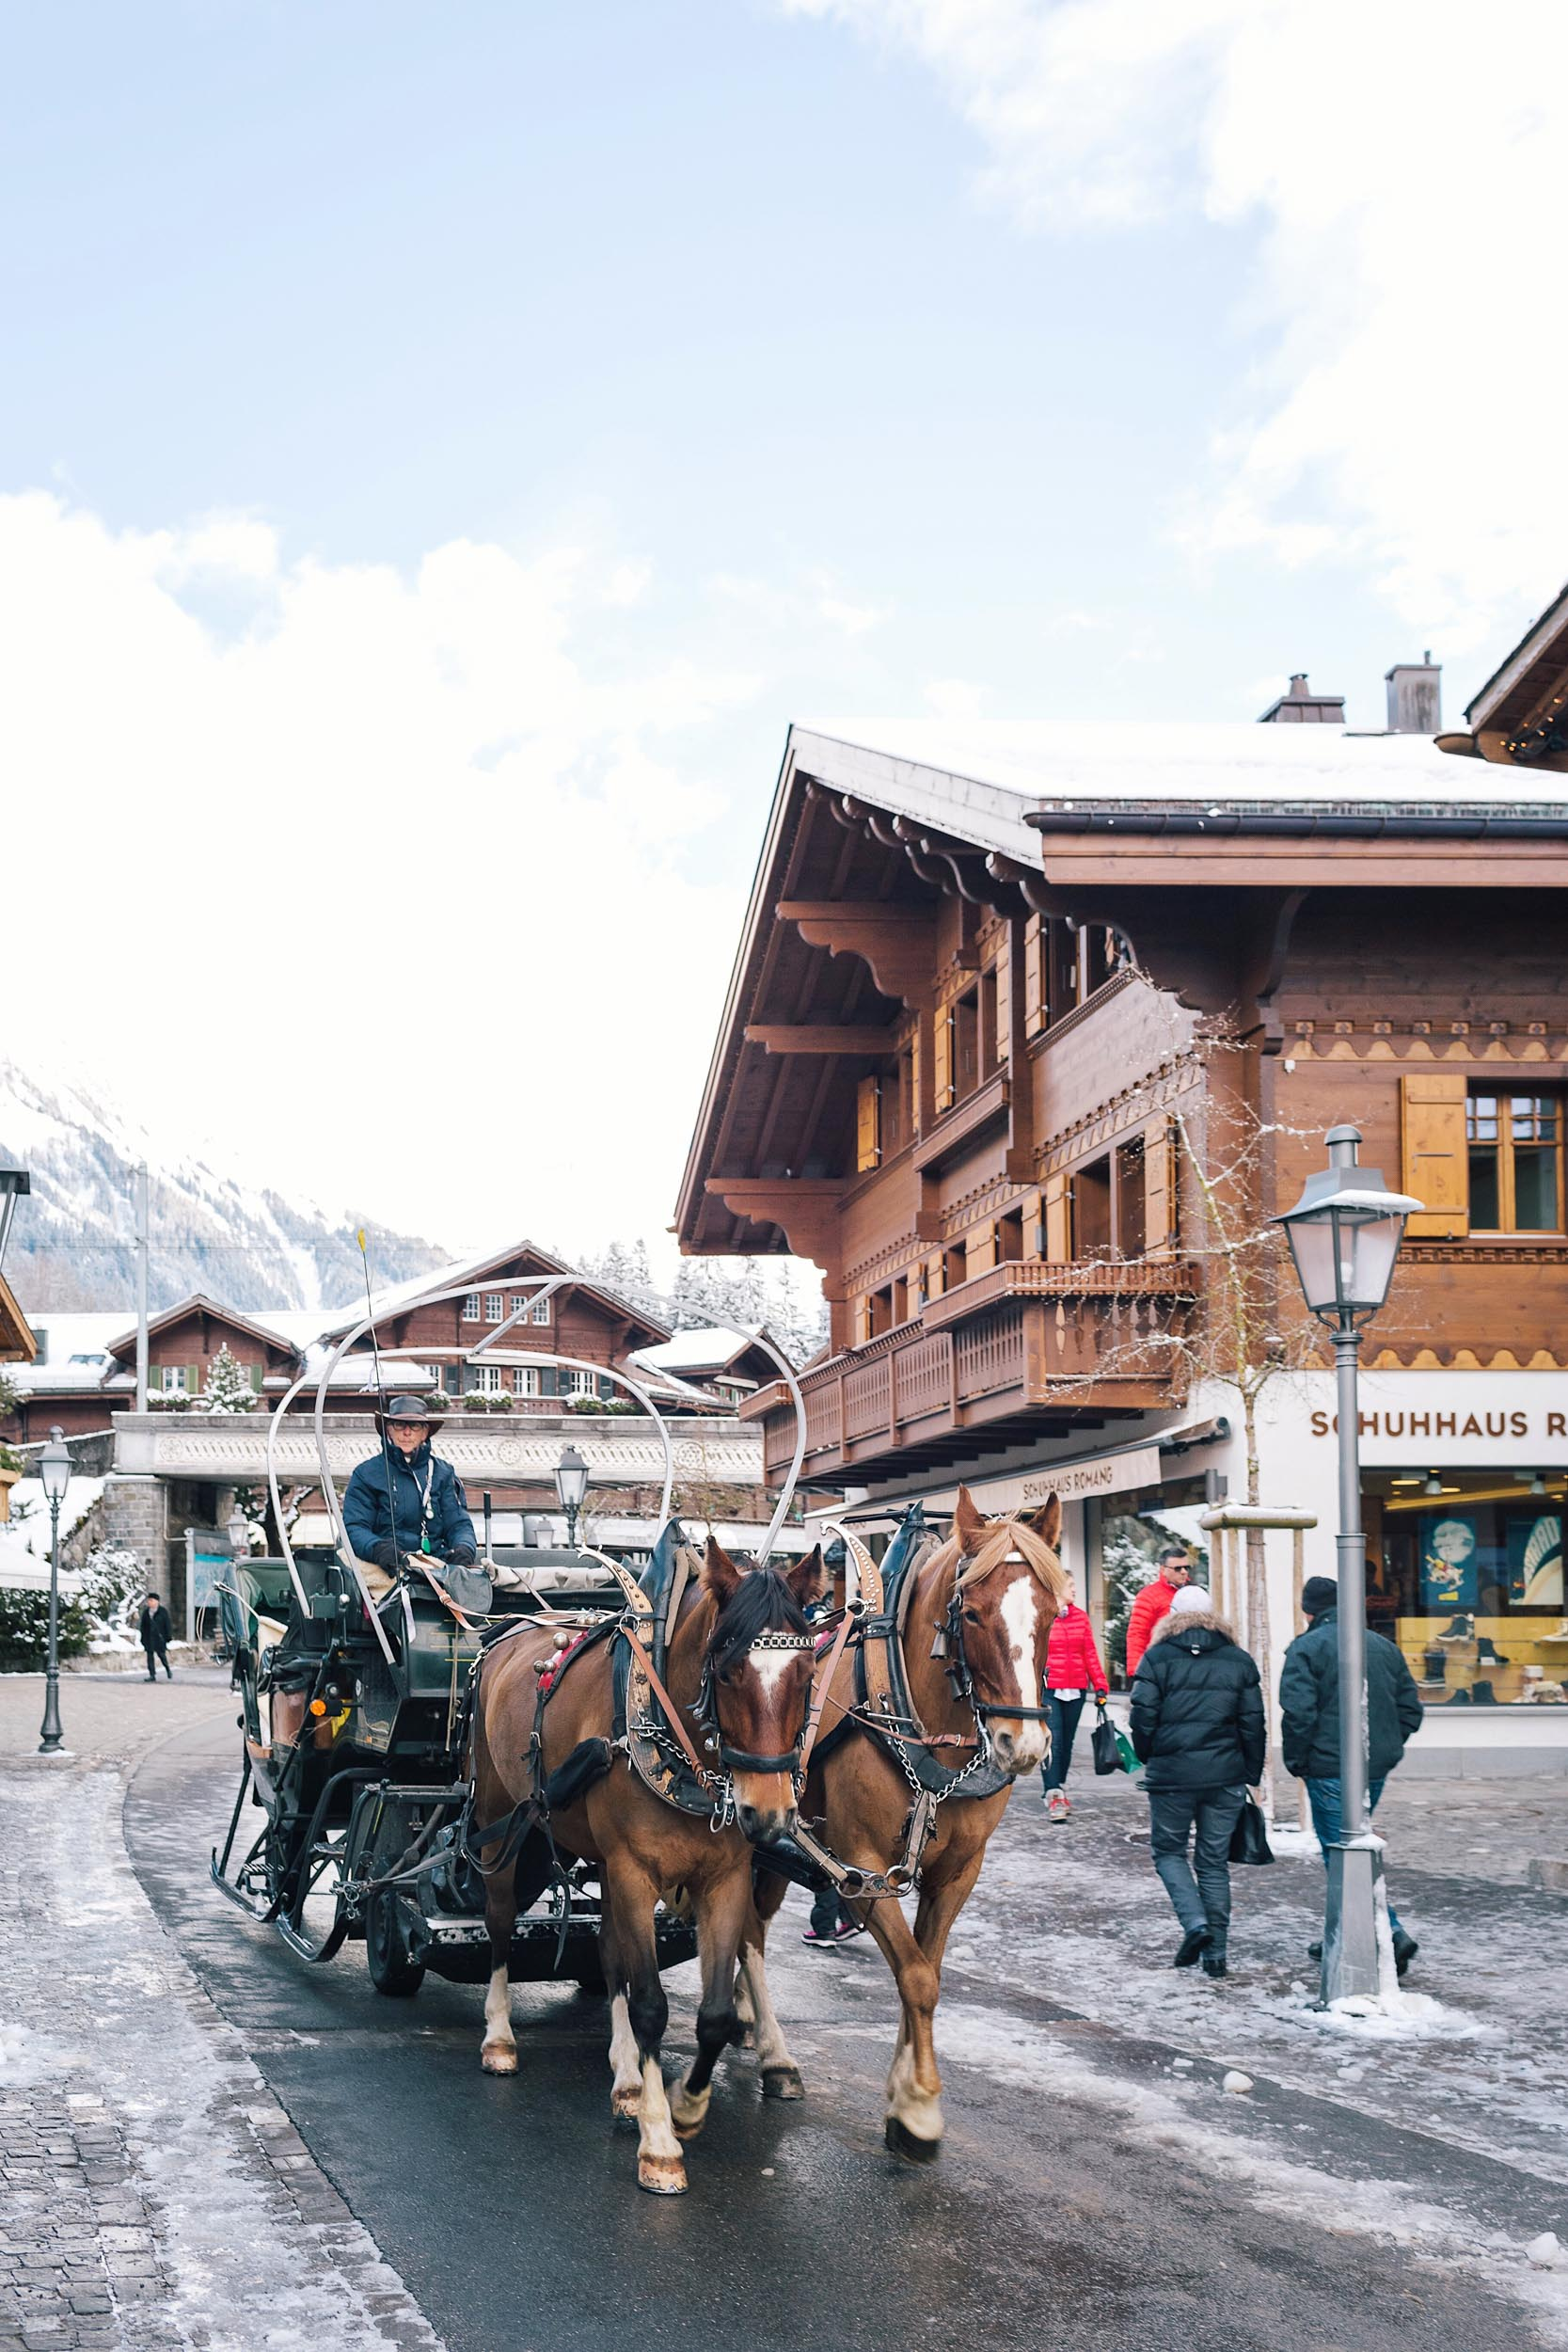 While there's a long list of things to do in Gstaad (more on that soon), the most unique is likely the Fondueland experience!